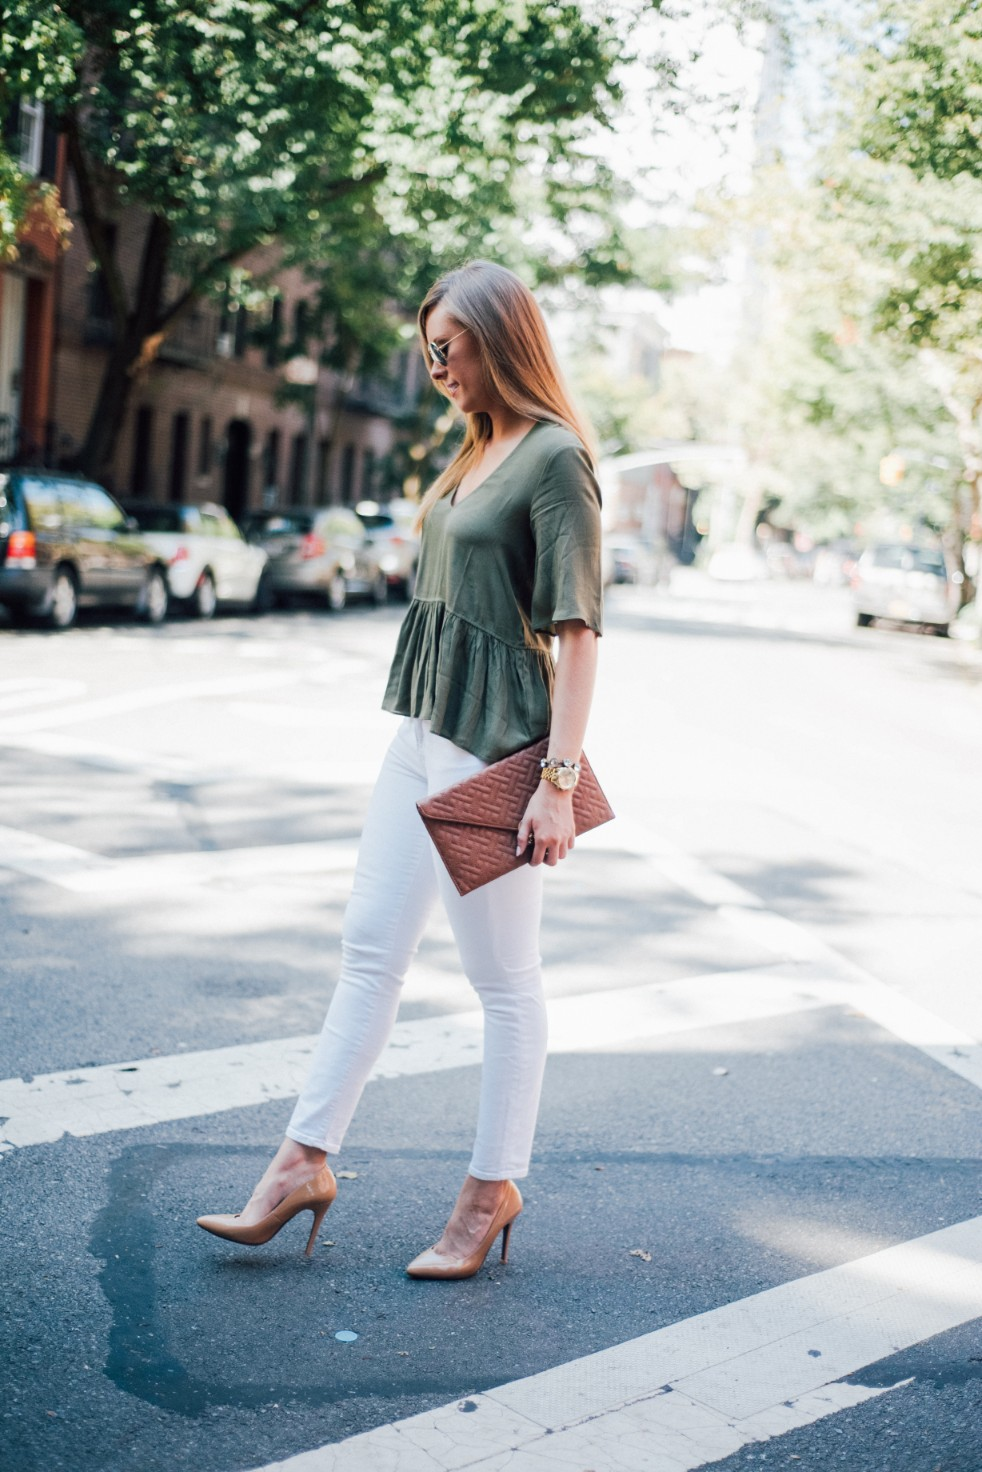 white jeans and peplum top west village fashion new york fashion blogger lauren slade style elixir blog spring outfit ideas 10 - Style Sessions - White Jeans and Peplum Top in the West Village featured by popular US style blogger, Style Elixir